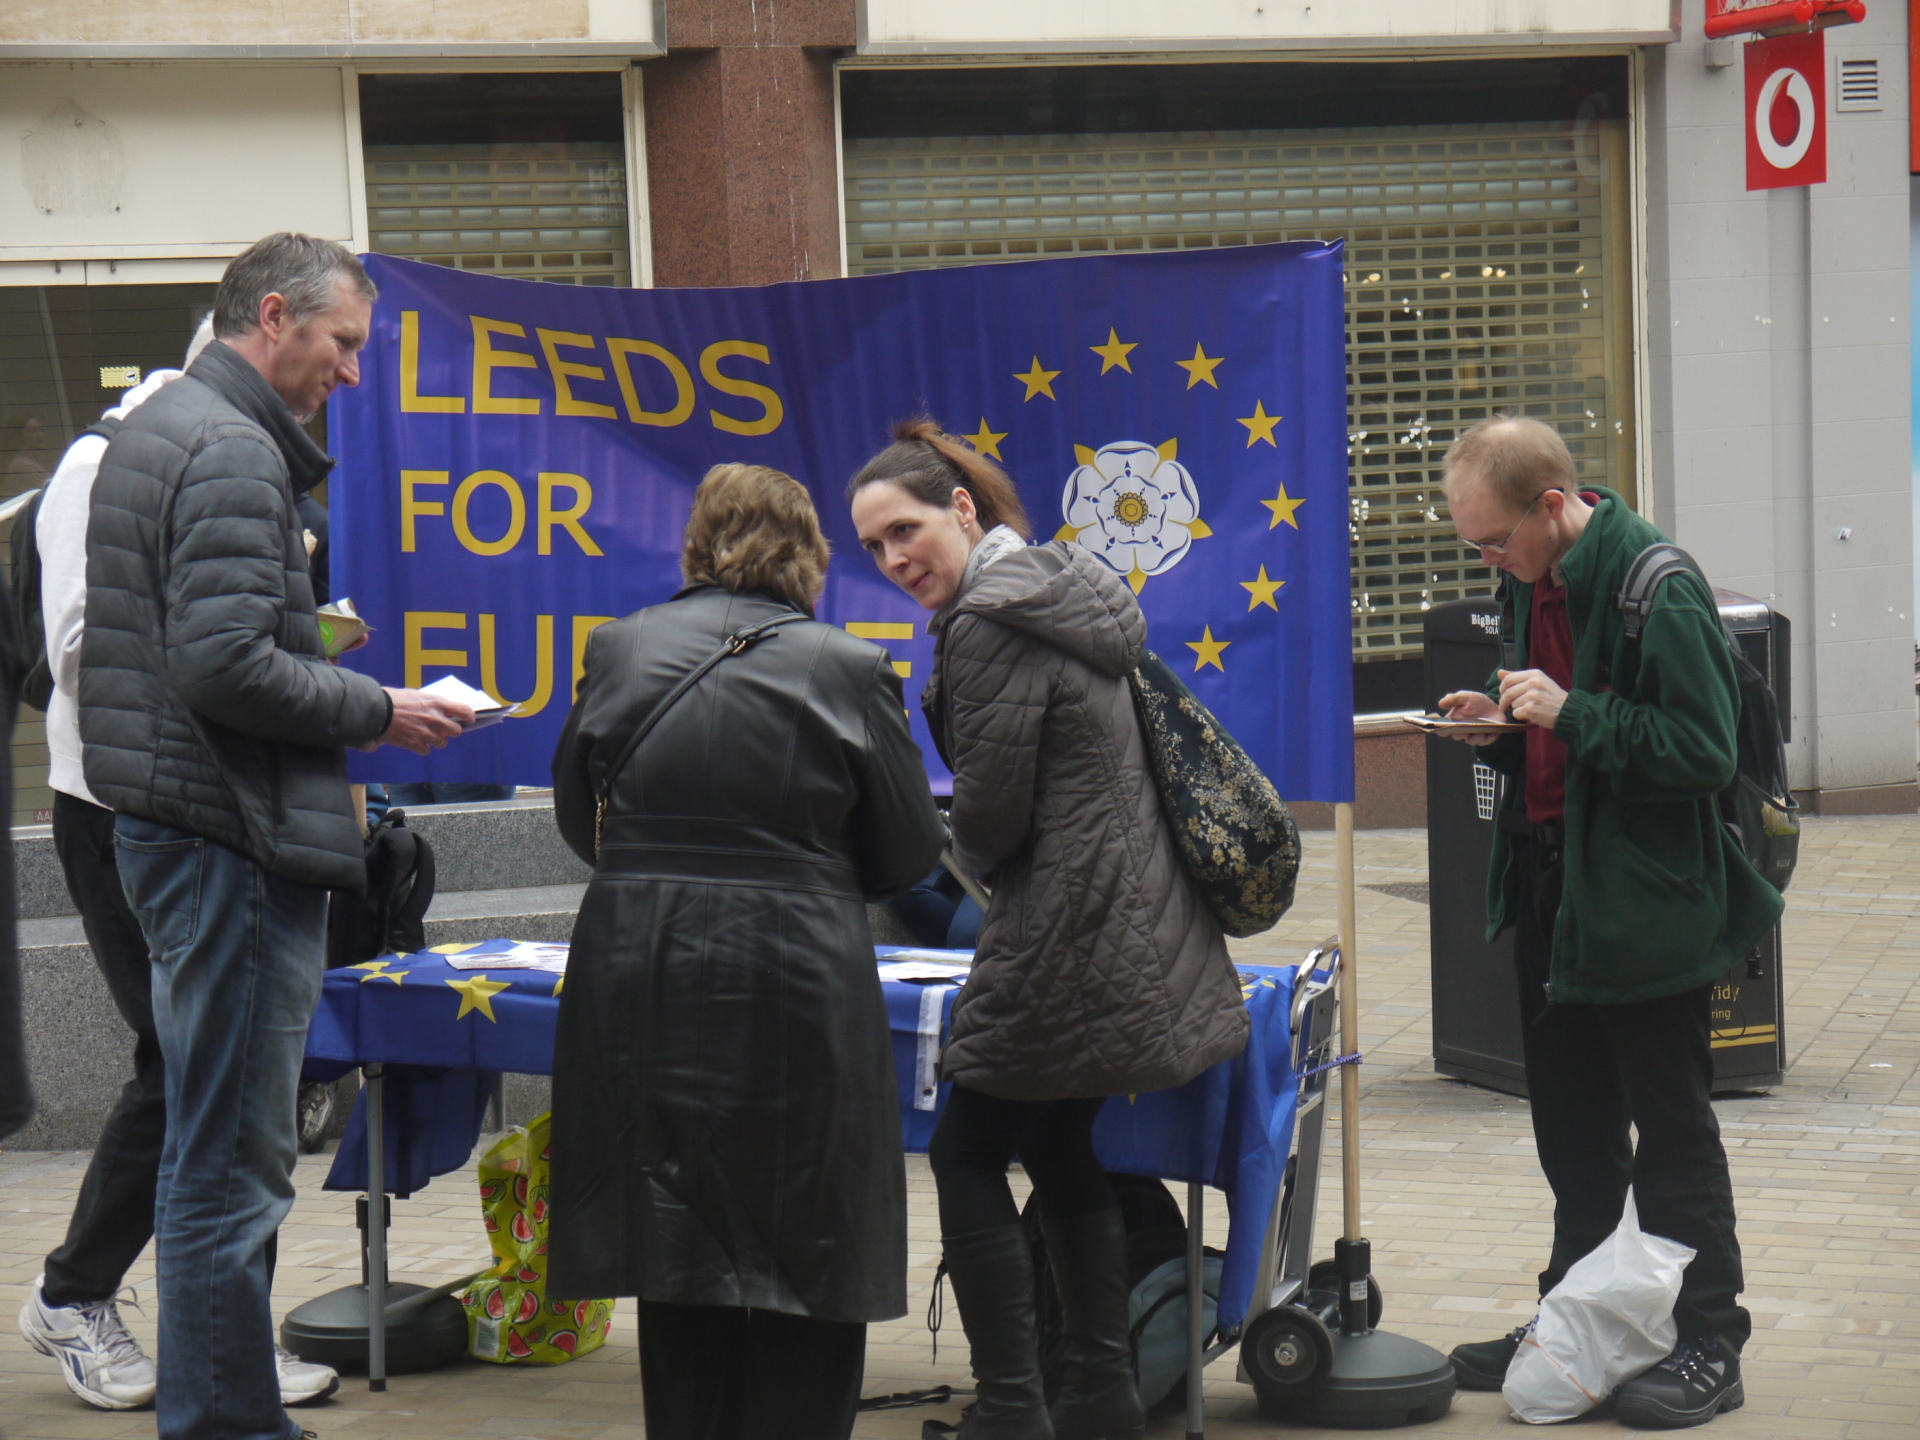 Fighting brexit in Leeds